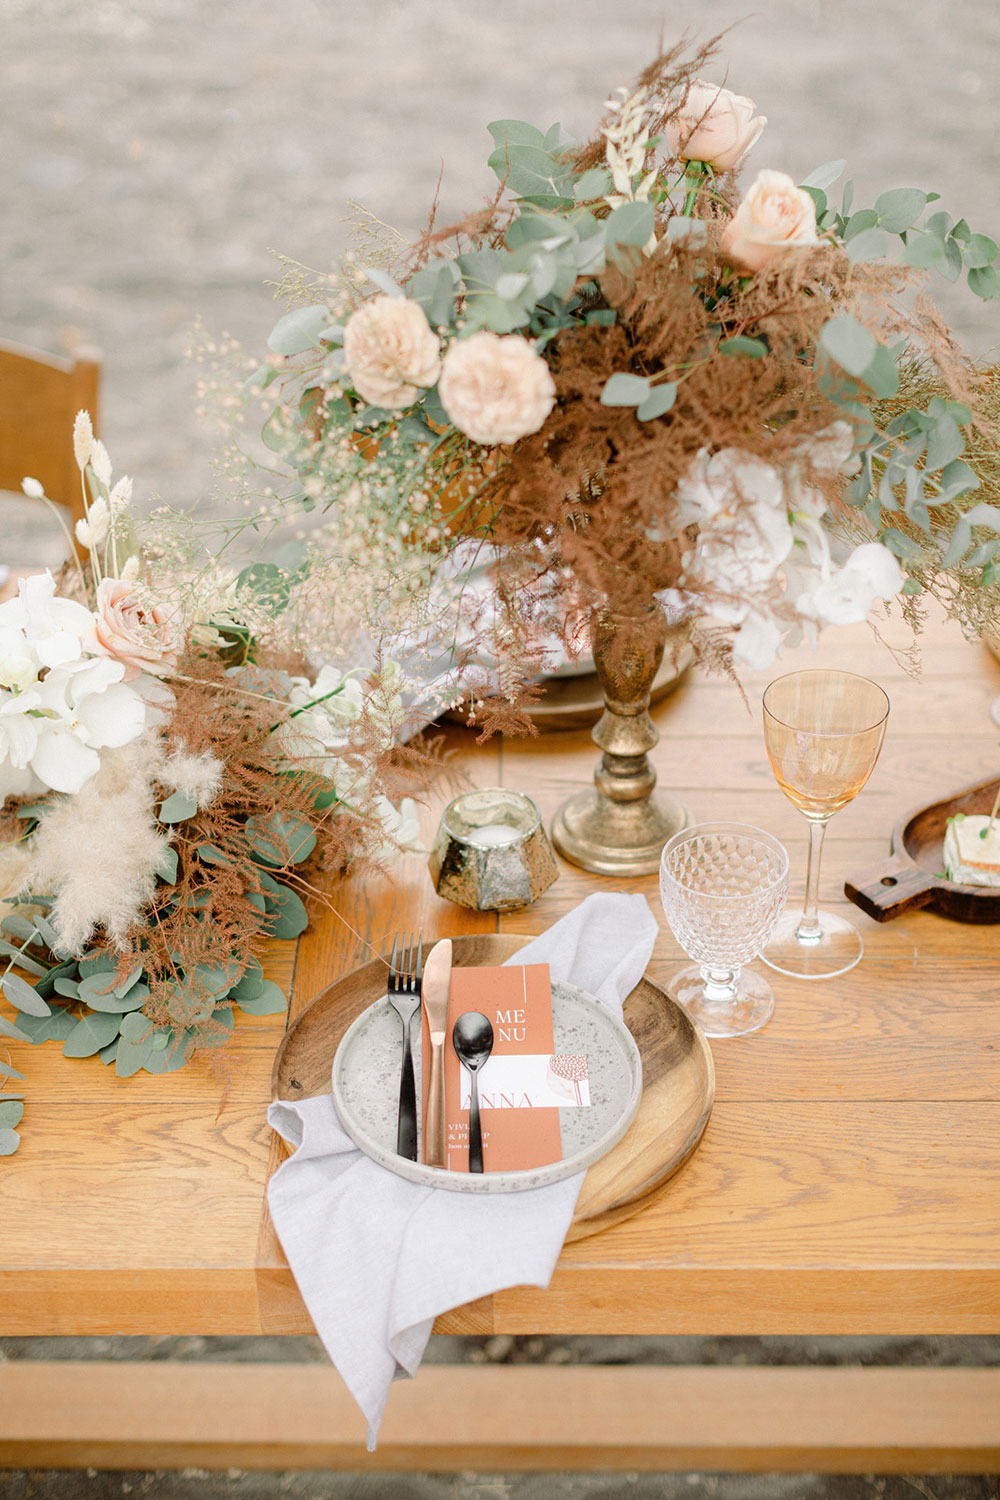 The wedding reception space was done with wooden chargers, rust menus and amber glasses, chic centerpieces with blush blooms and rust leaves and greenery